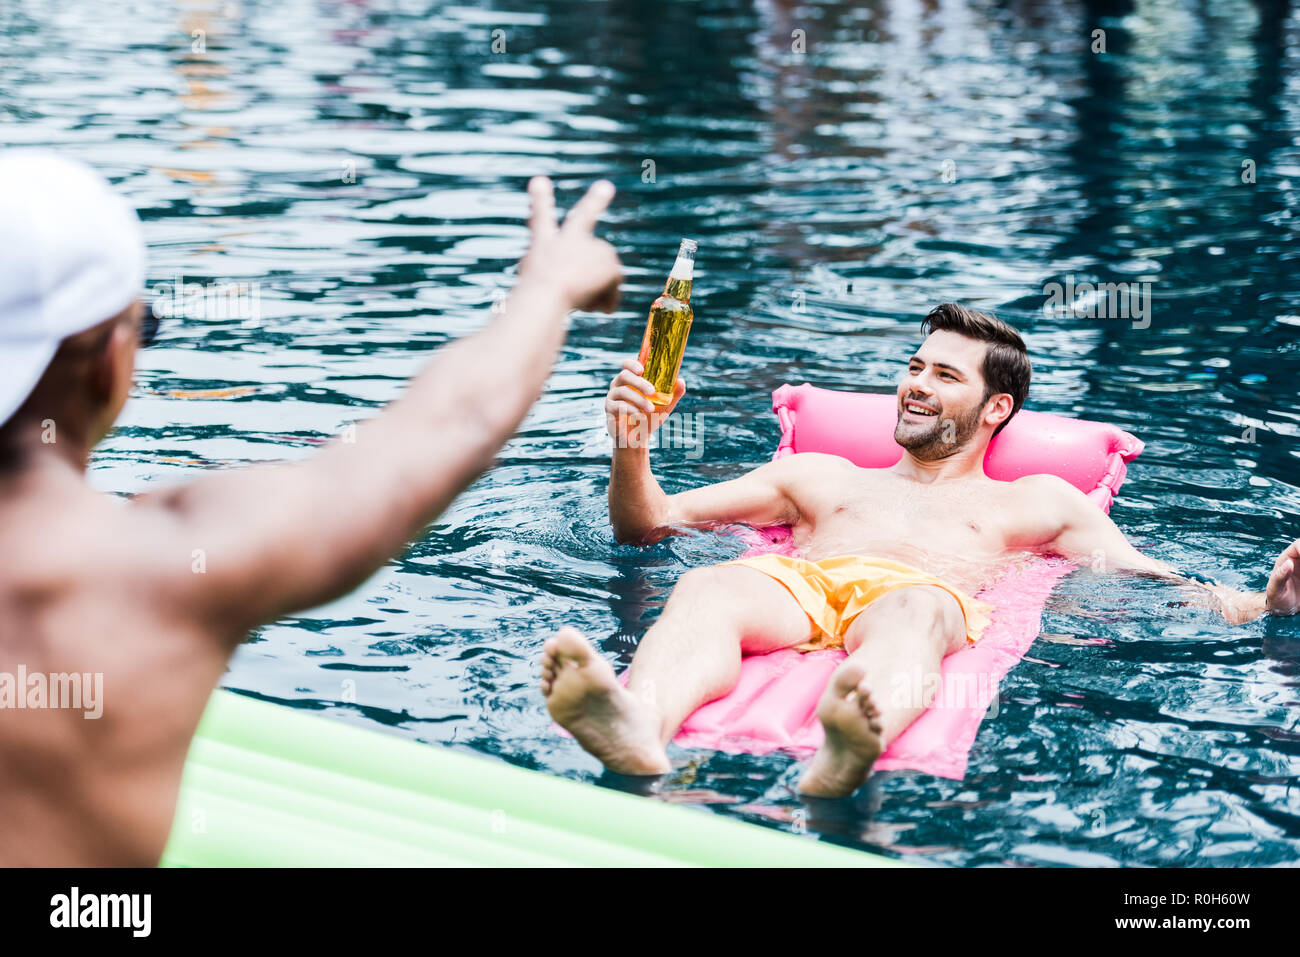 smiling man with beer resting on inflatable mattress in swimming pool while his friend gesturing by fingers at poolside - Stock Image